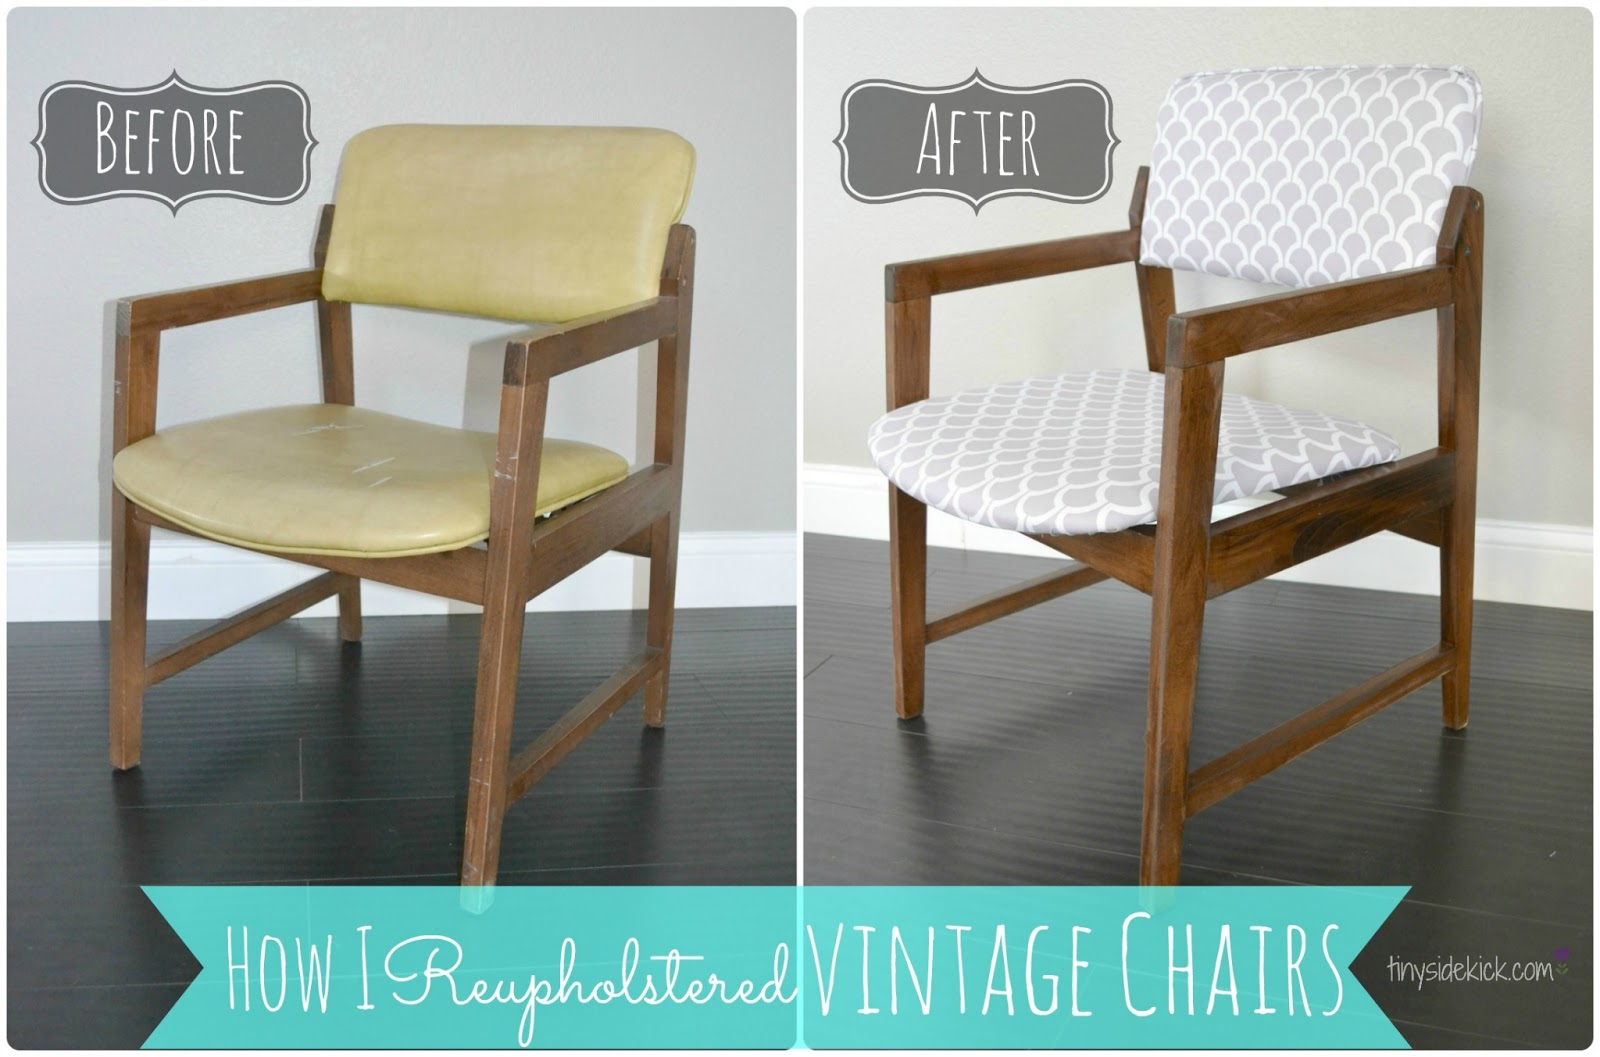 reupholstering vintage dining chairs retro kitchen chairs How to Reupholster Vintage Dining Chairs